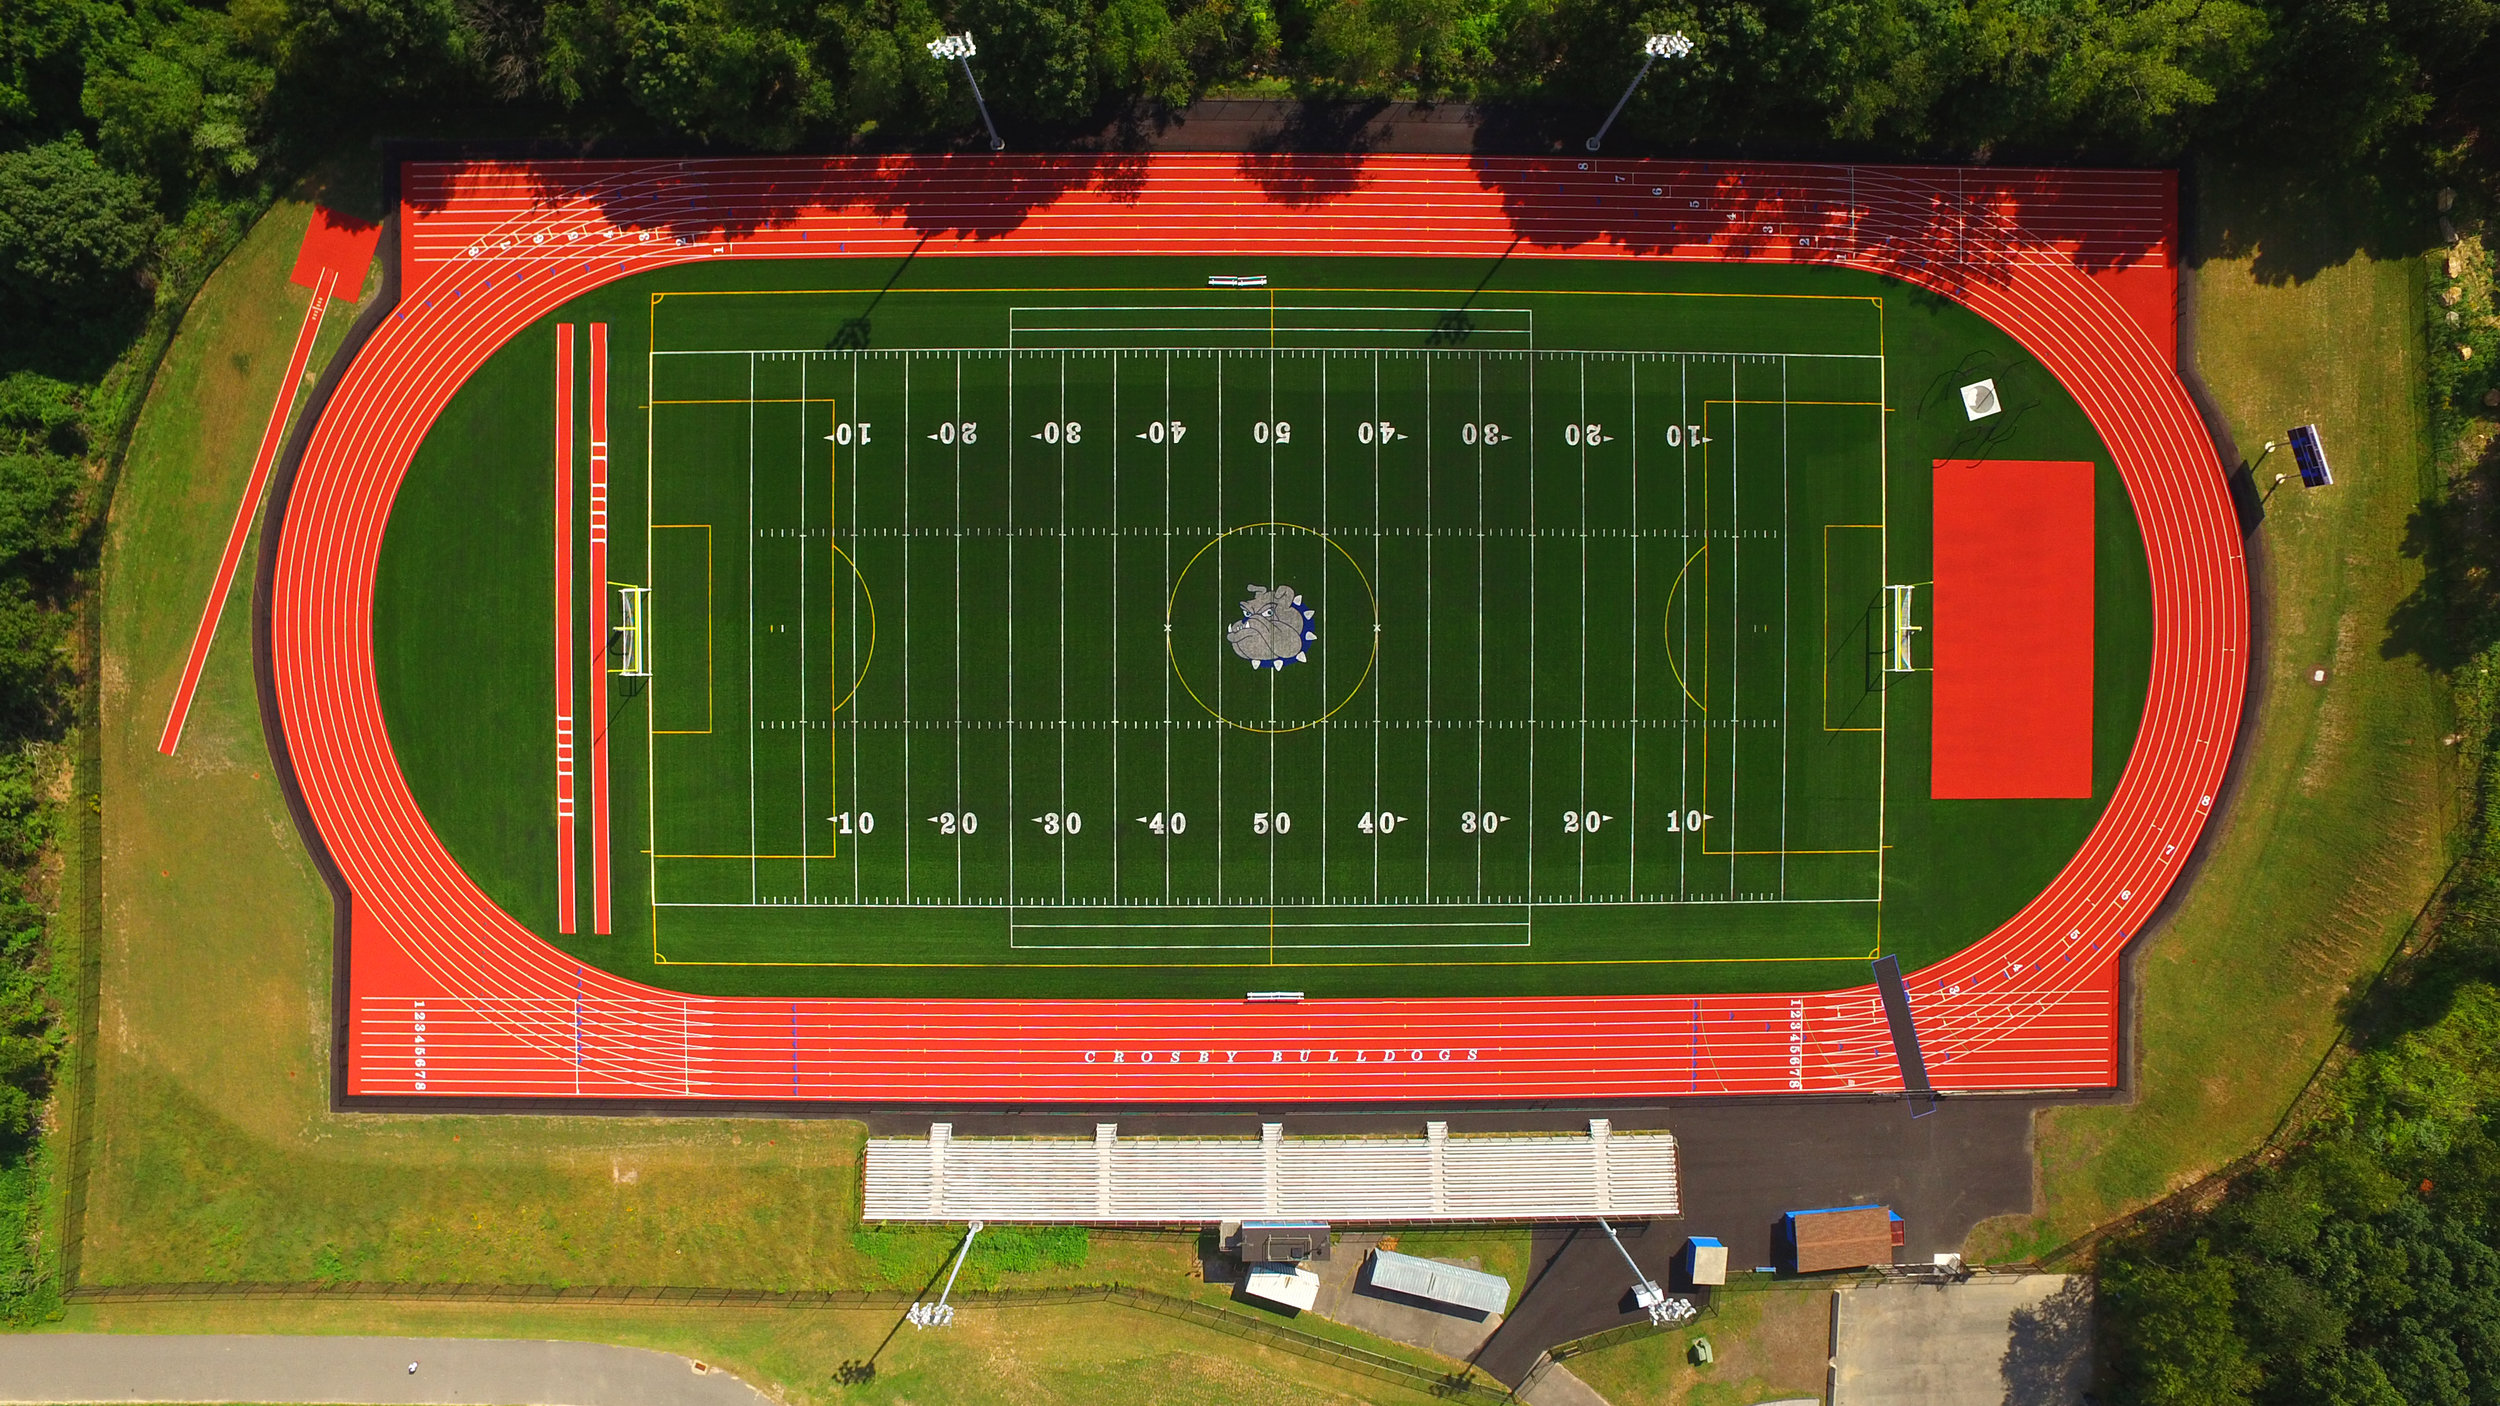 Drone Photo: Crosby High School Multi-Purpose Athletic Field & Running Track